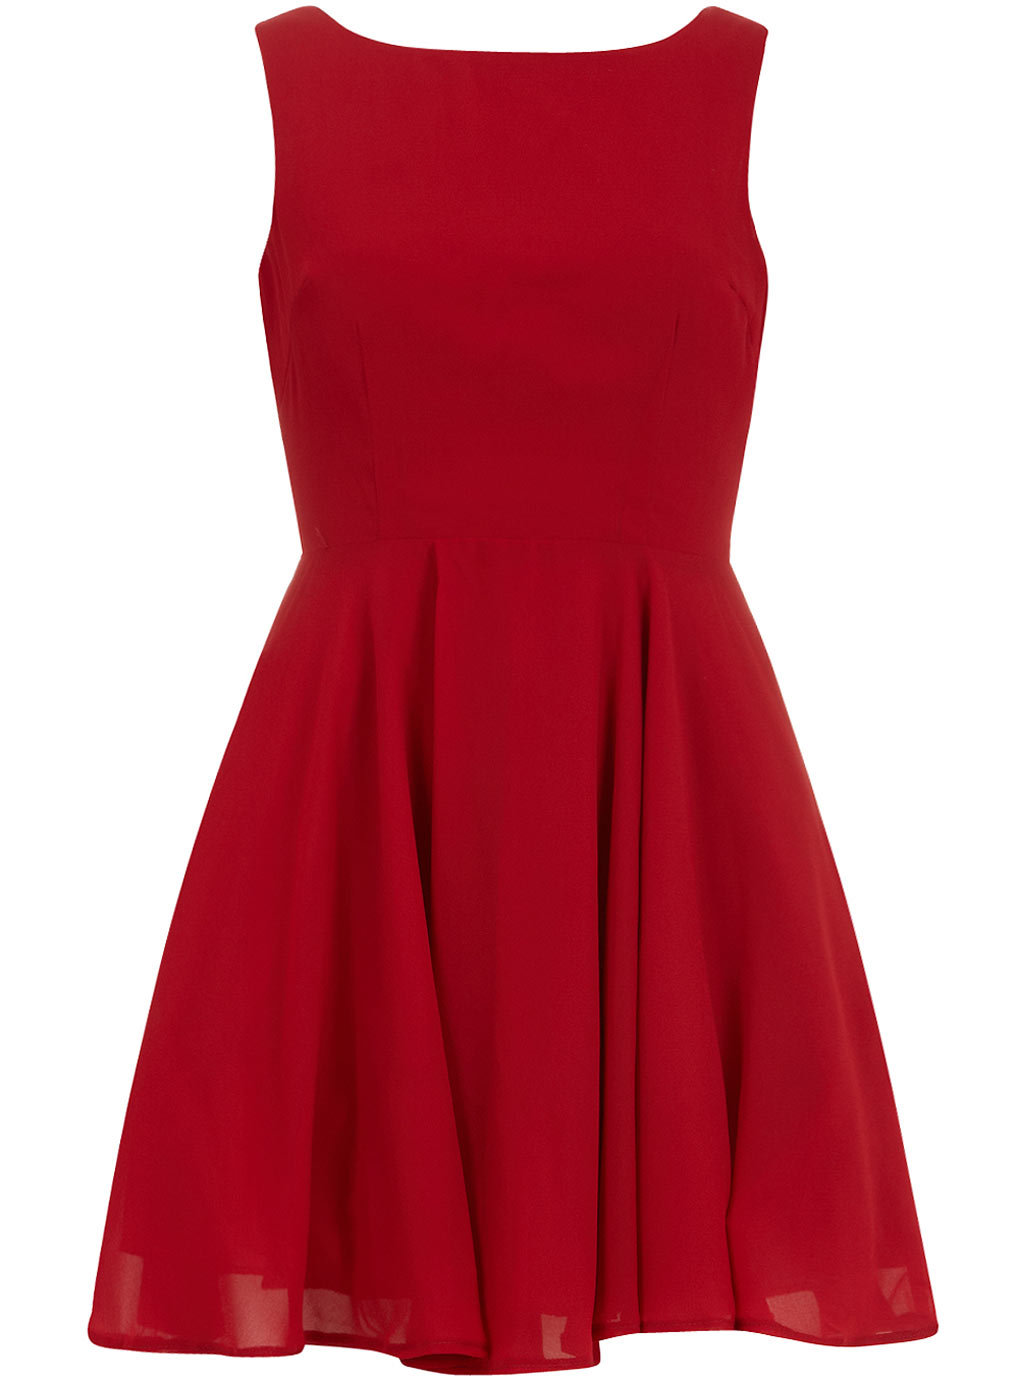 Plain Red Dress